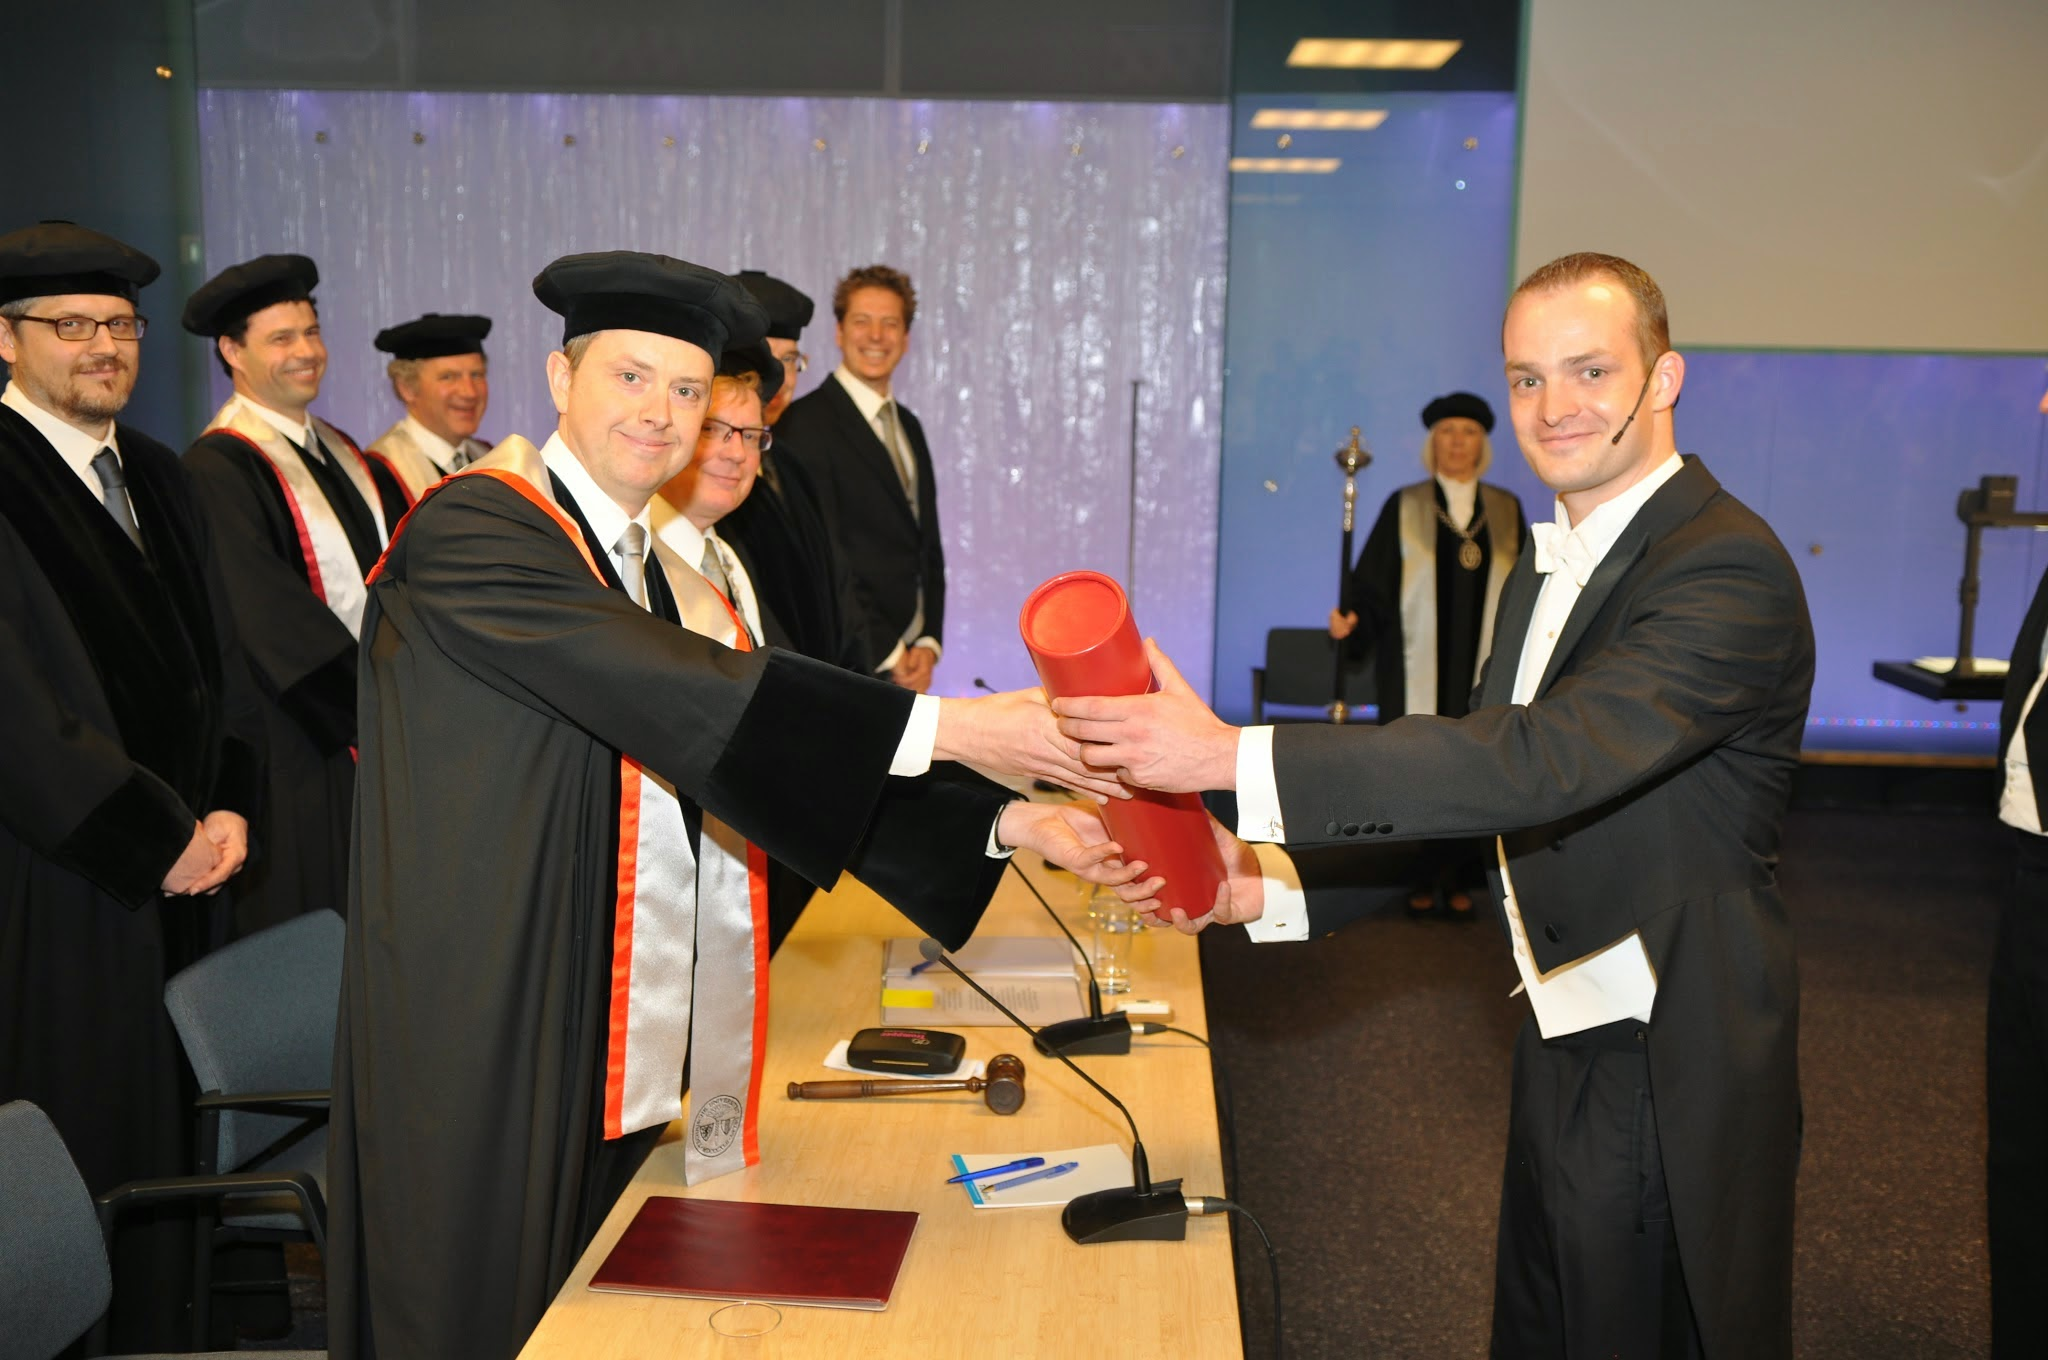 Delft university technology phd thesis